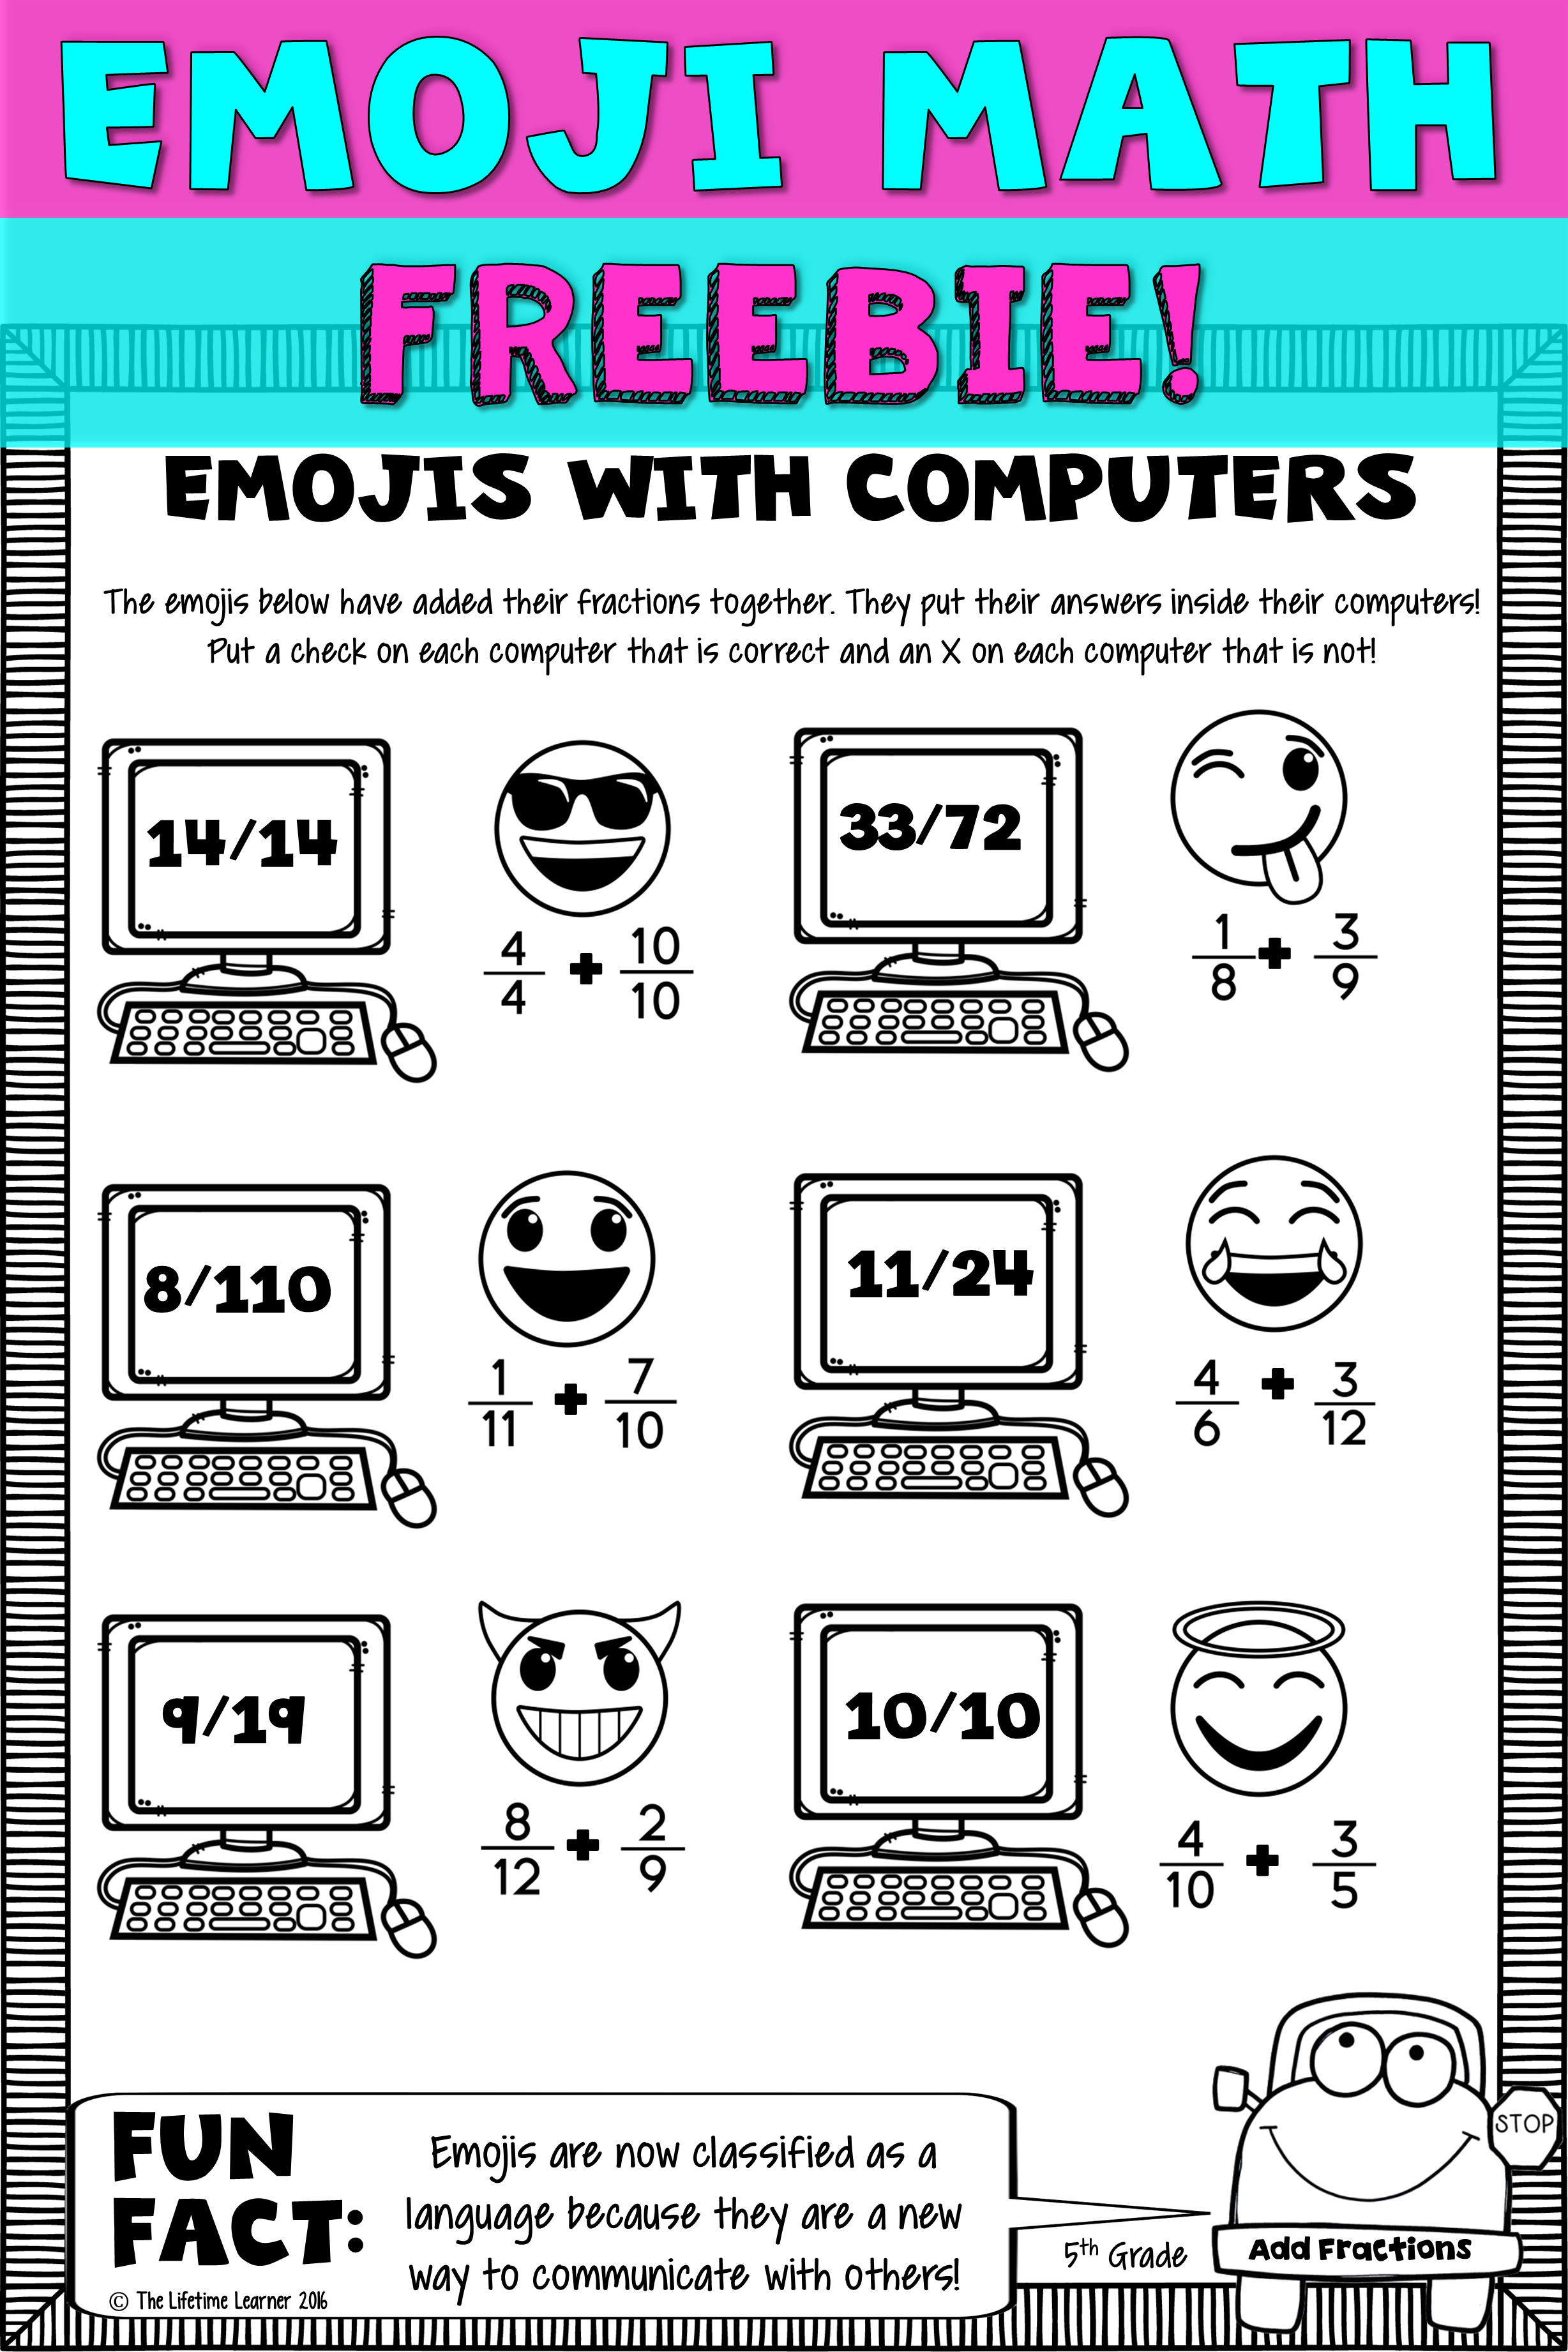 Fifth grade math is more fun with emojis! This freebie has 1 free ...